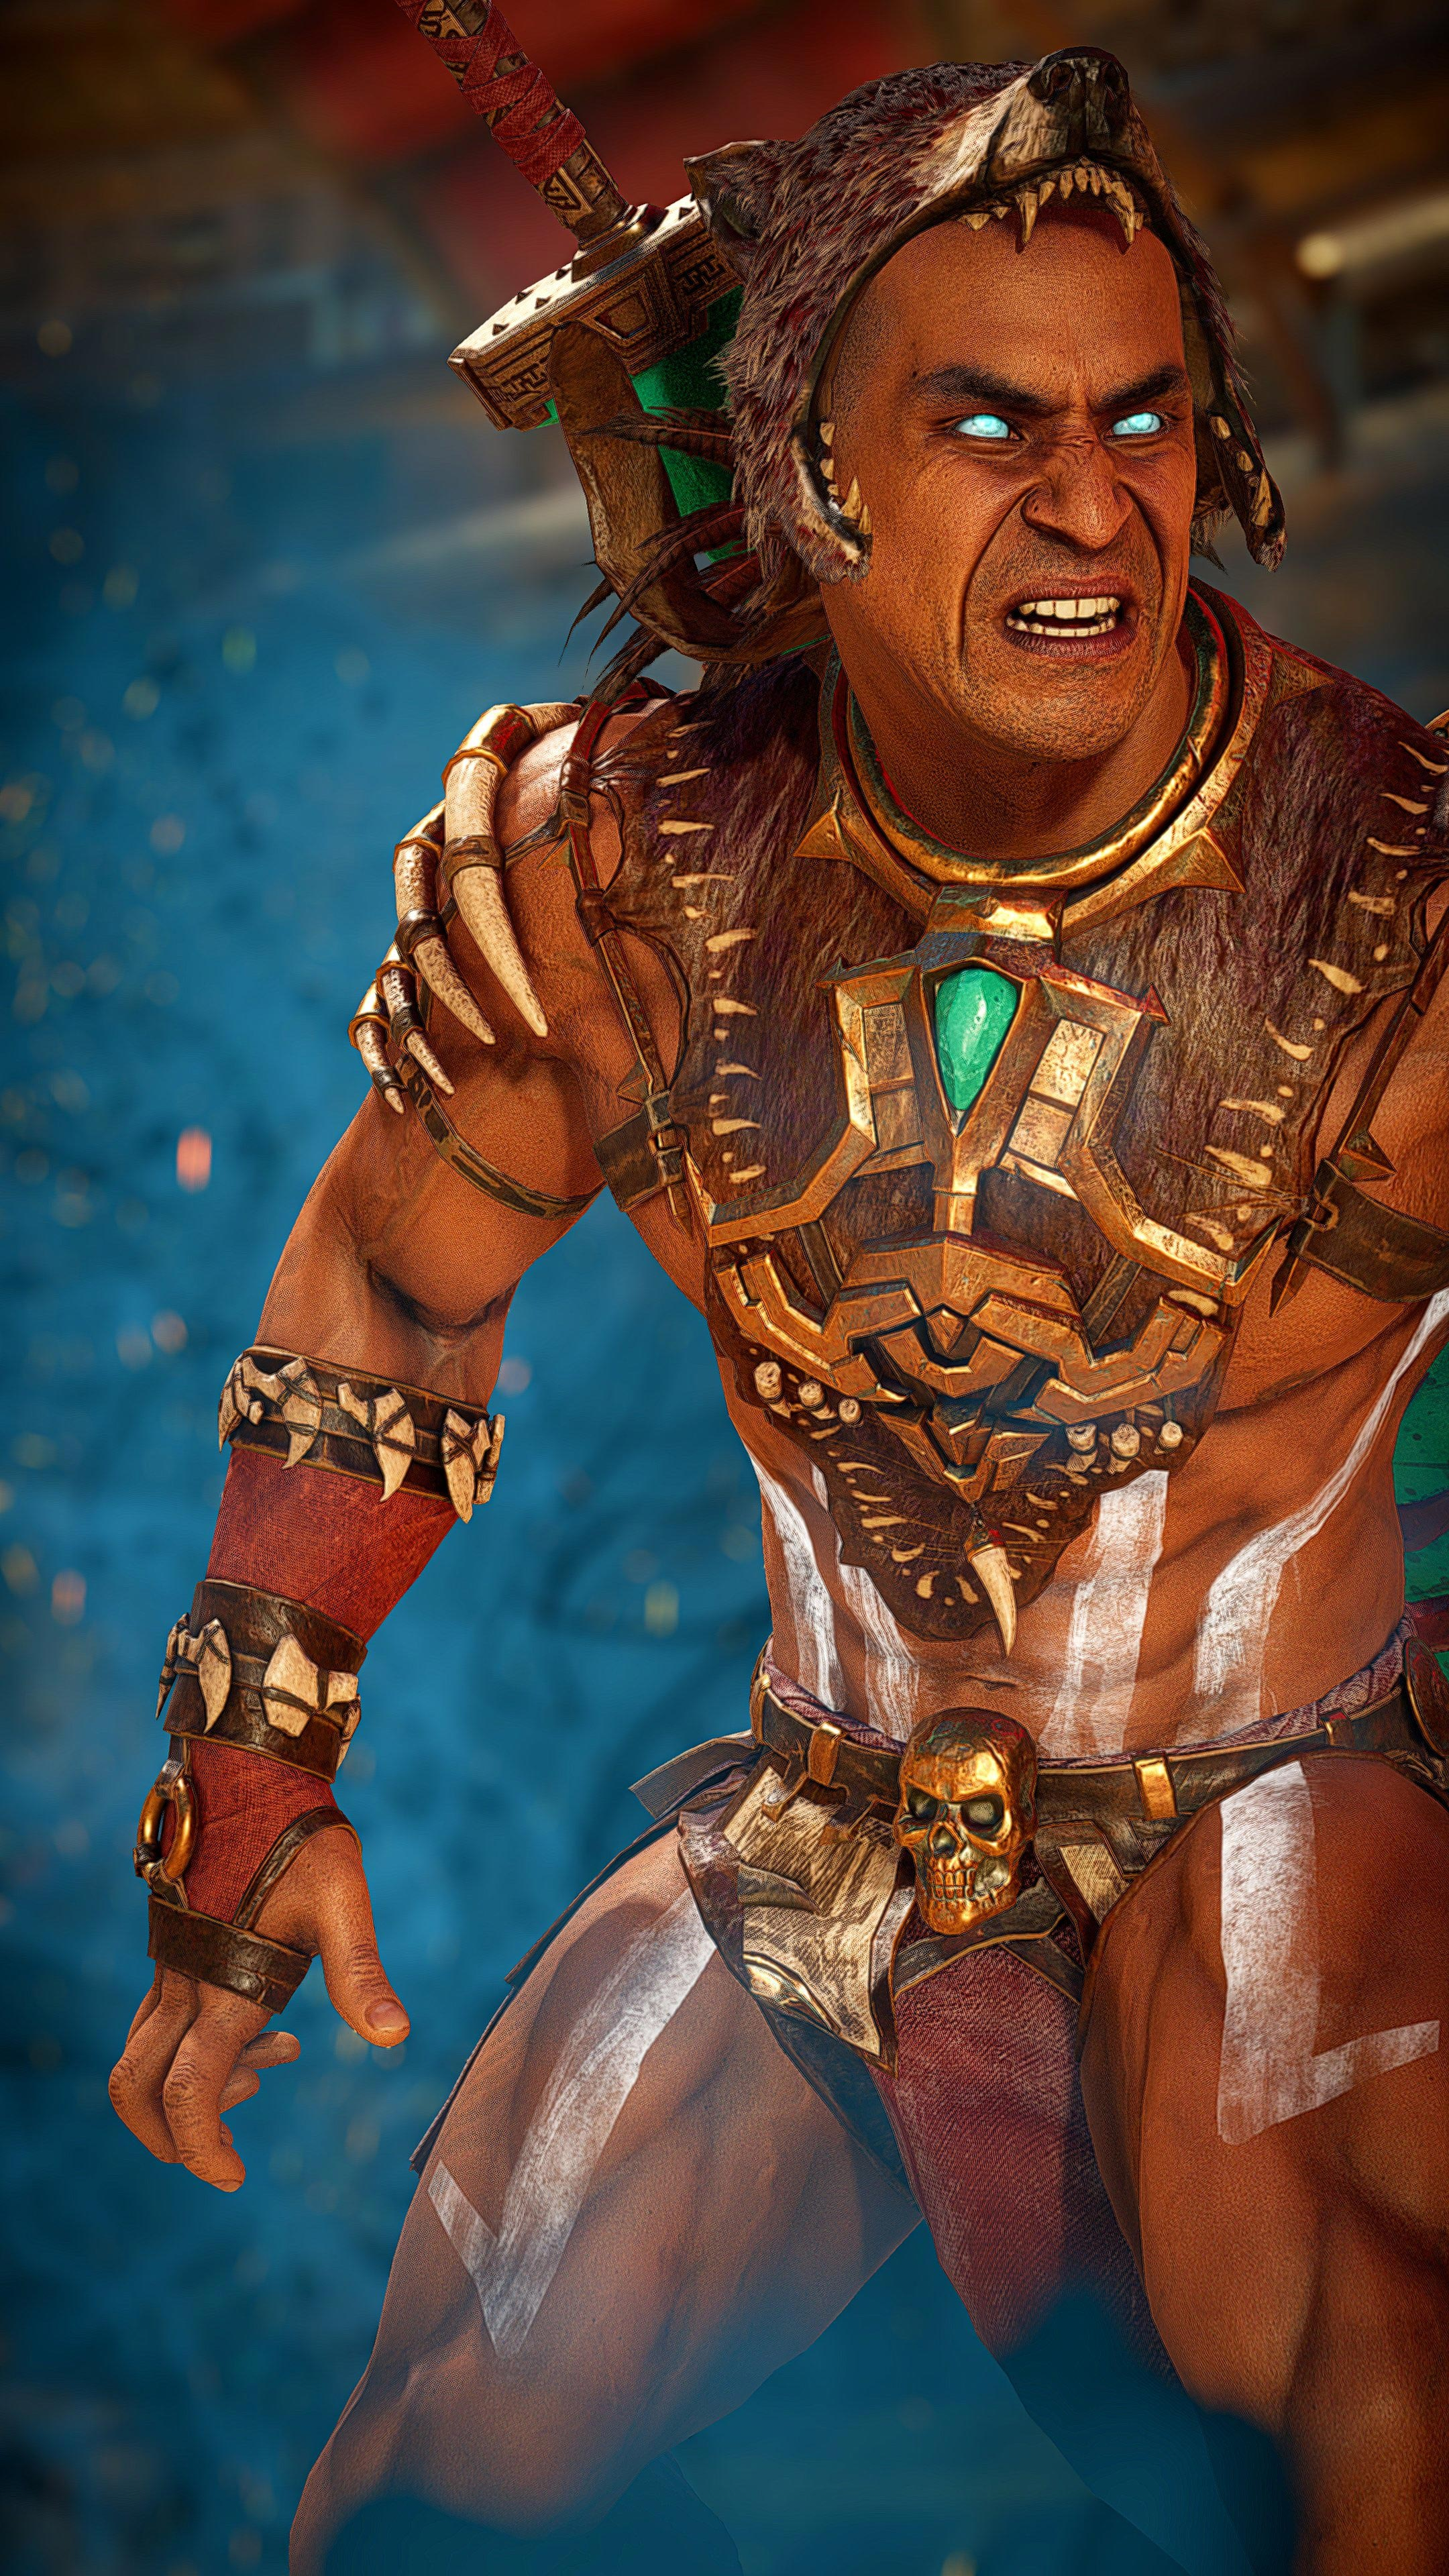 Liu Kang and Kotal Kahn rock their body paint and ink in Mortal Kombat 11 Ultimate 7 out of 8 image gallery